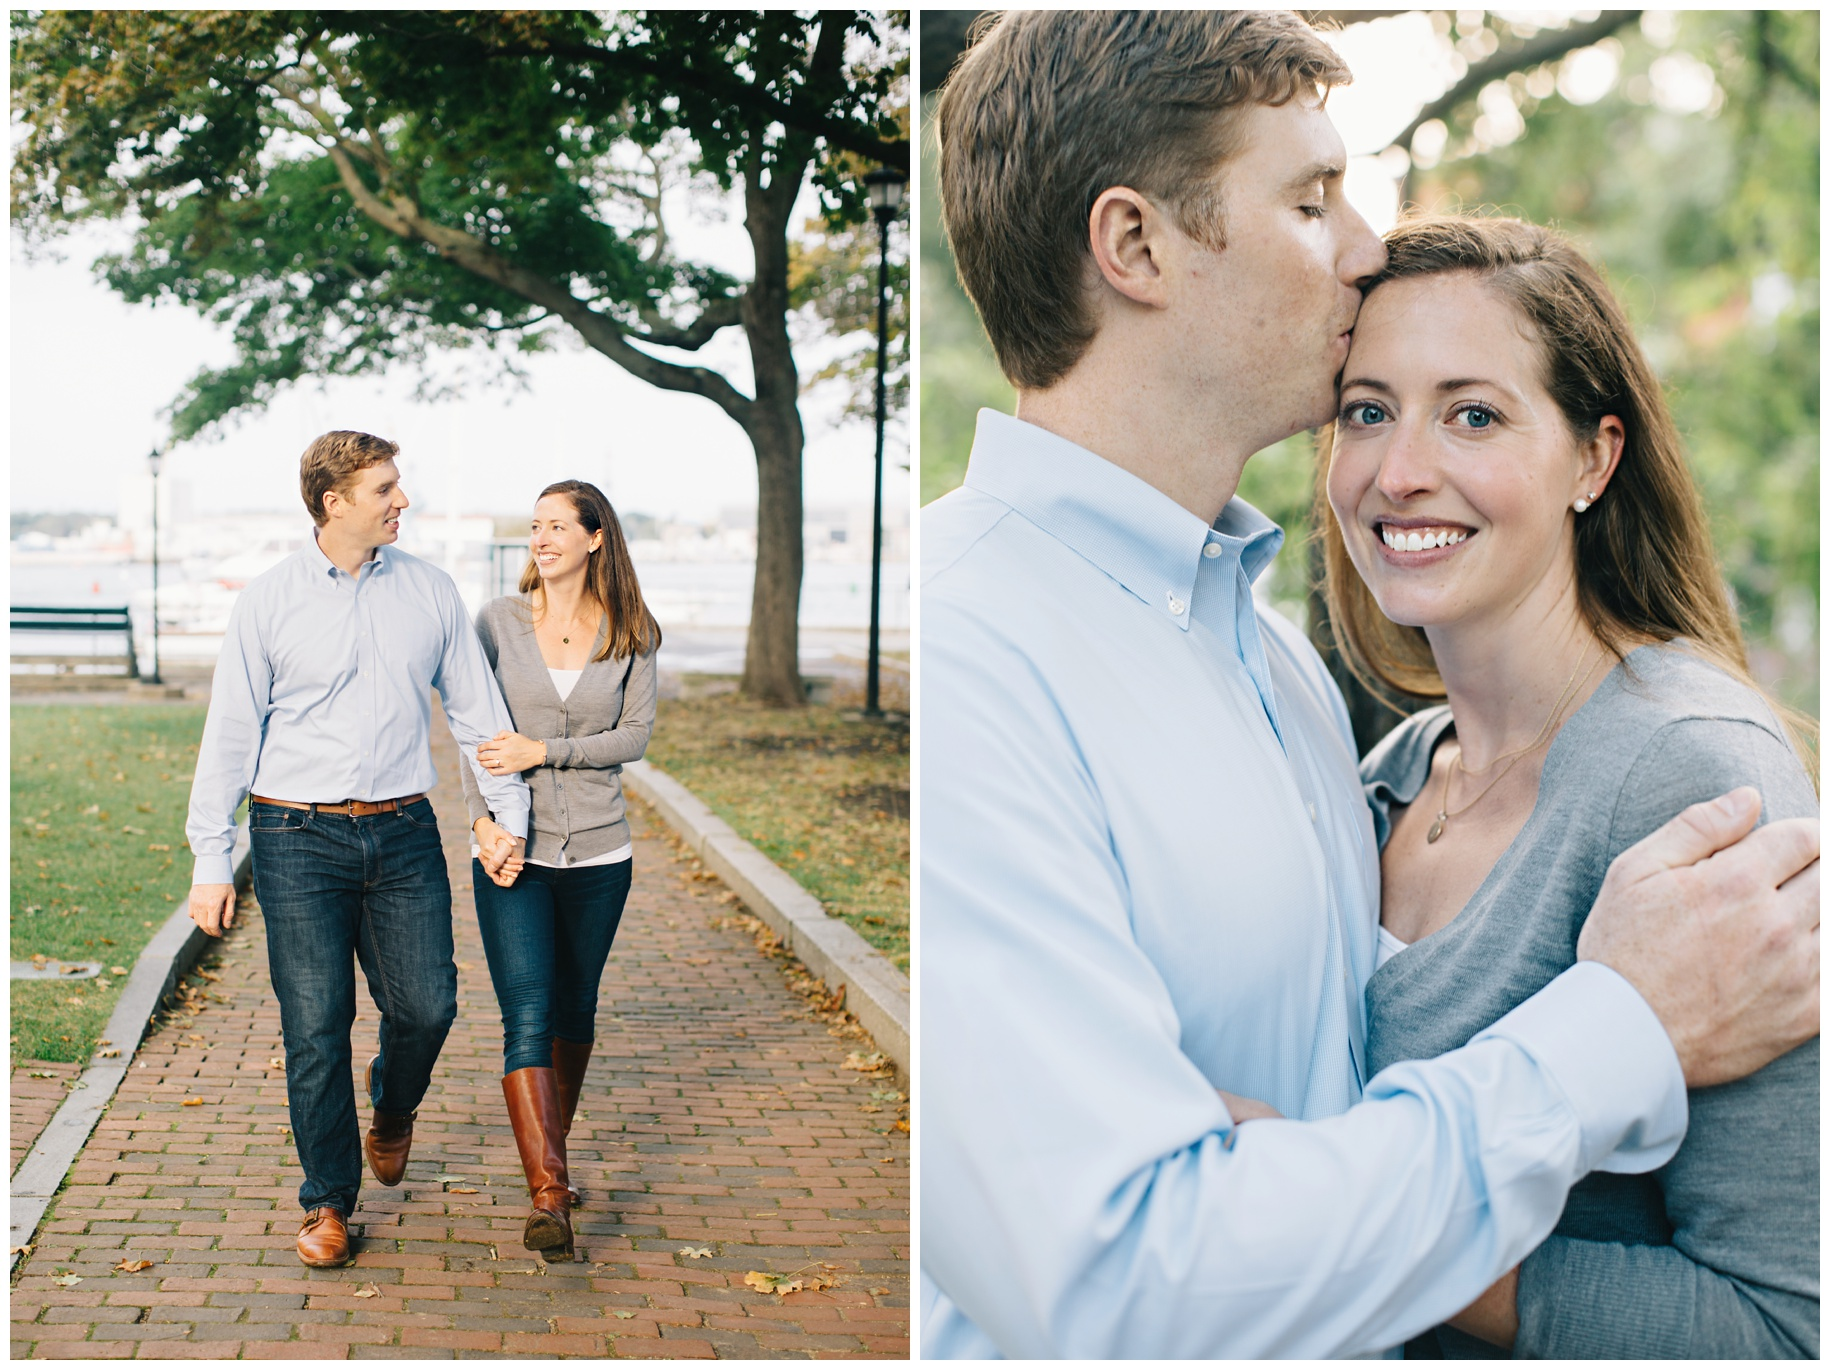 maineweddingphotographer_portsmouth_engagements_newhampshire_newengland-018